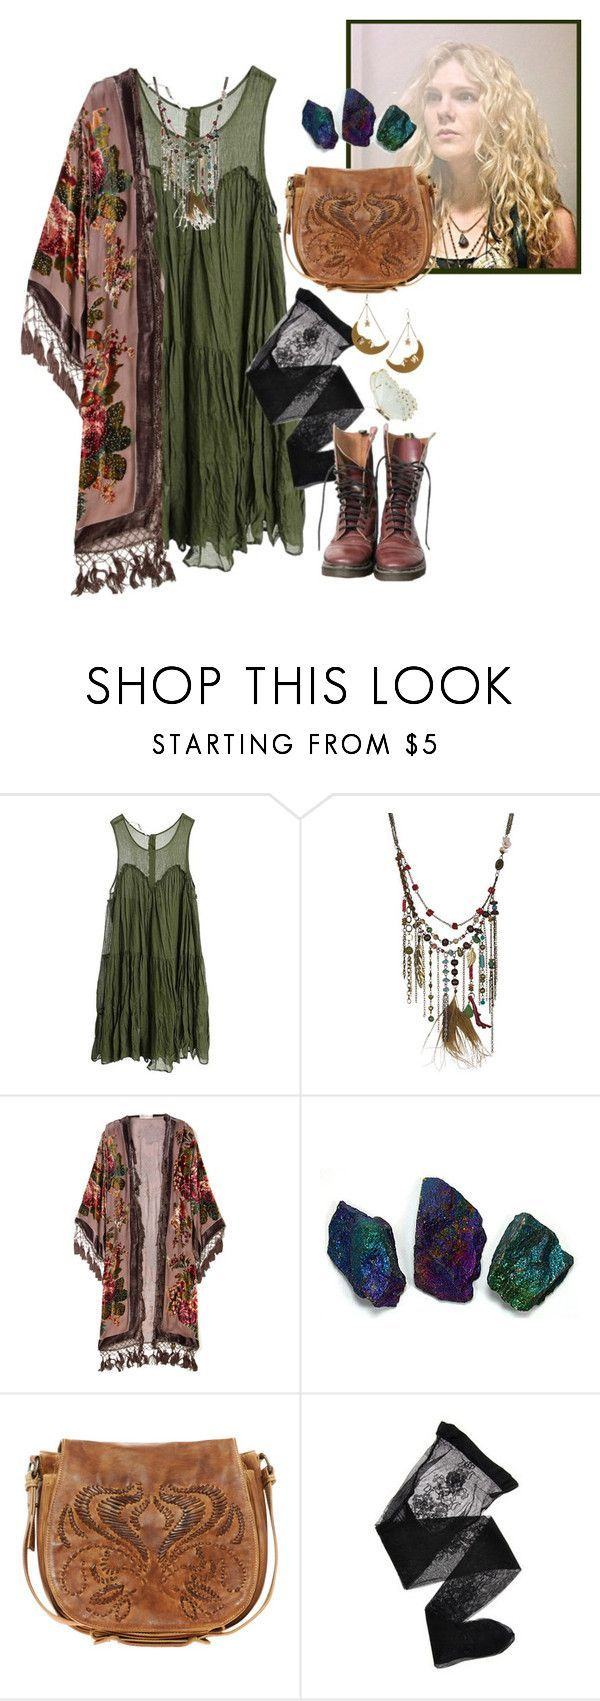 """""""American Horror Story: Misty Day"""" by im-trash ❤ liked on Polyvore featuring Custommade, Coven, Kite and Butterfly, Ash, Emporio Armani, Tatty Devine, women's clothing, women, female and woman - clothing, boys, running, yoga, beach, boho clothes *ad"""